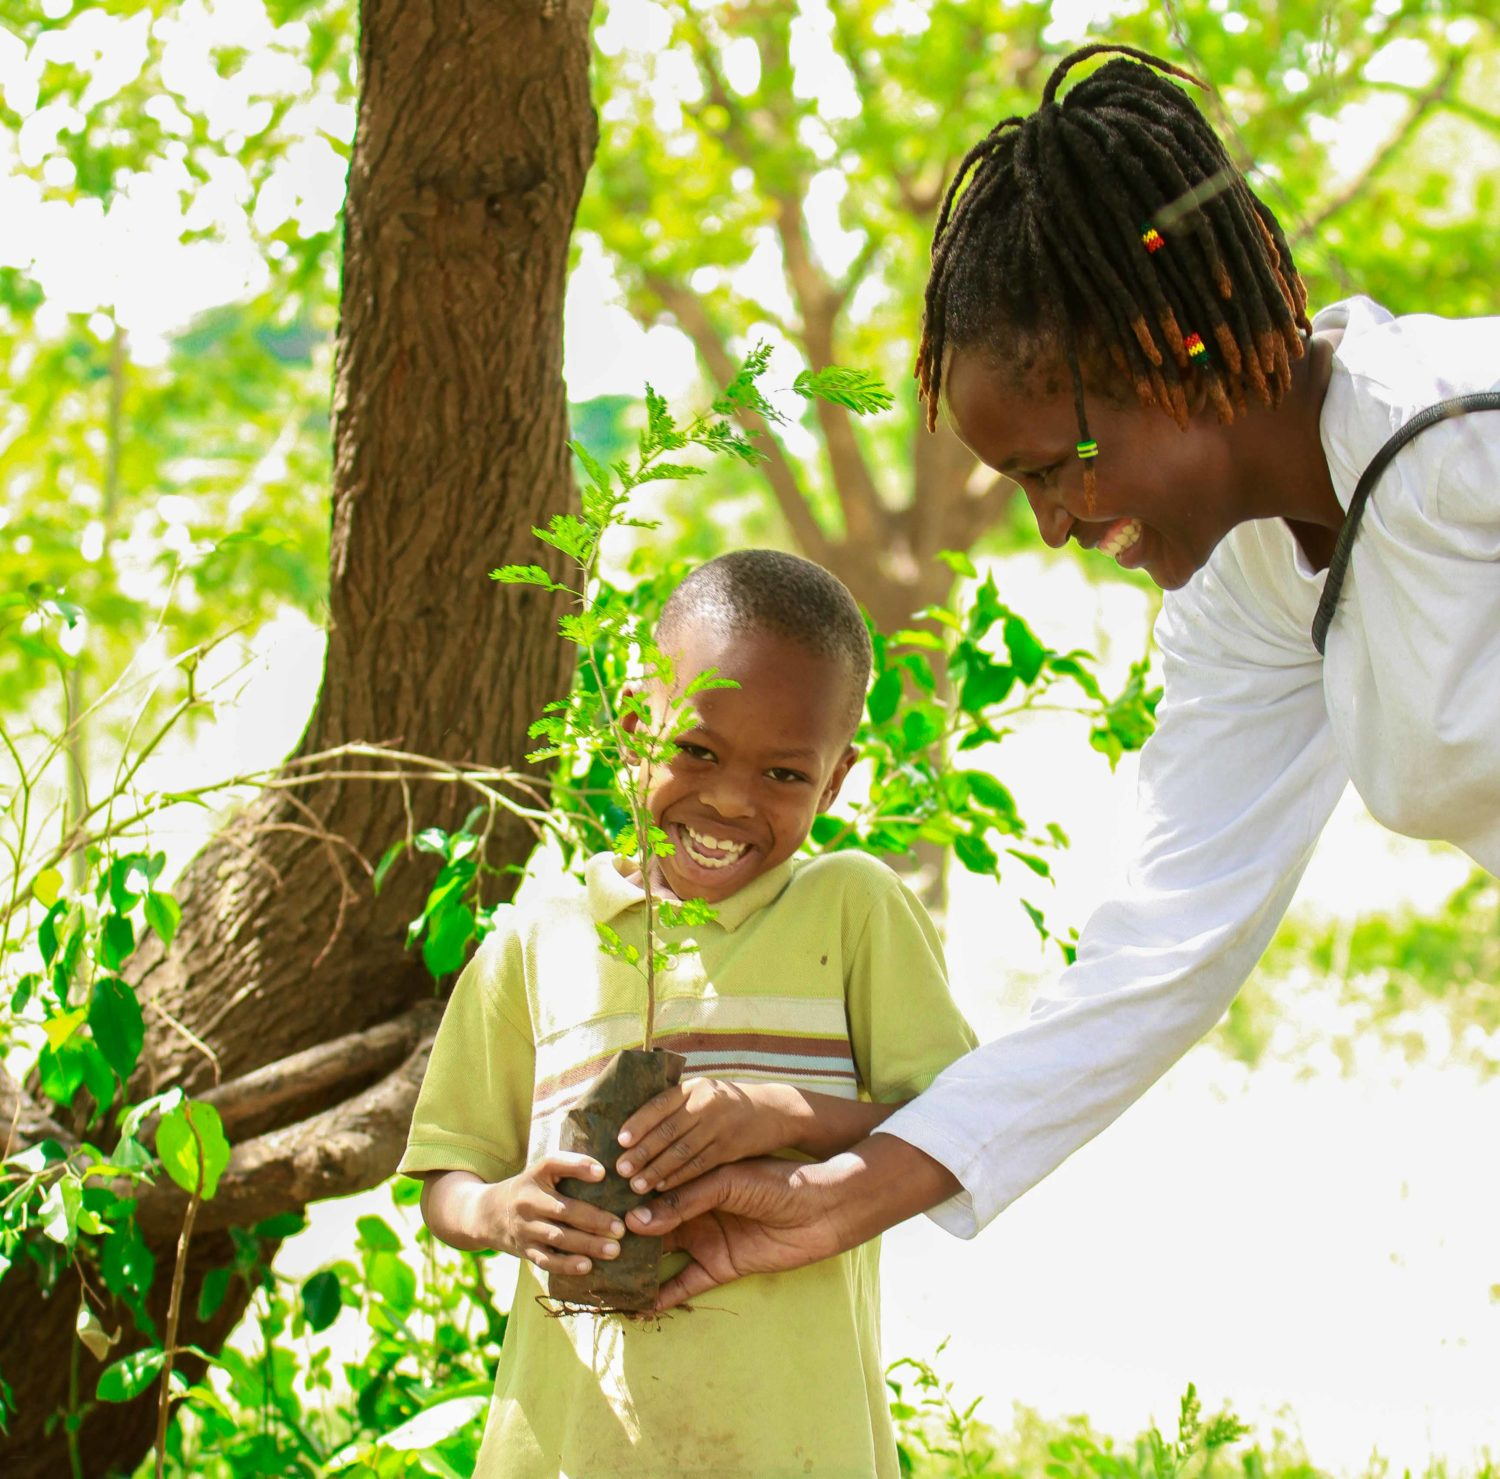 creating a healthier earth by planting trees